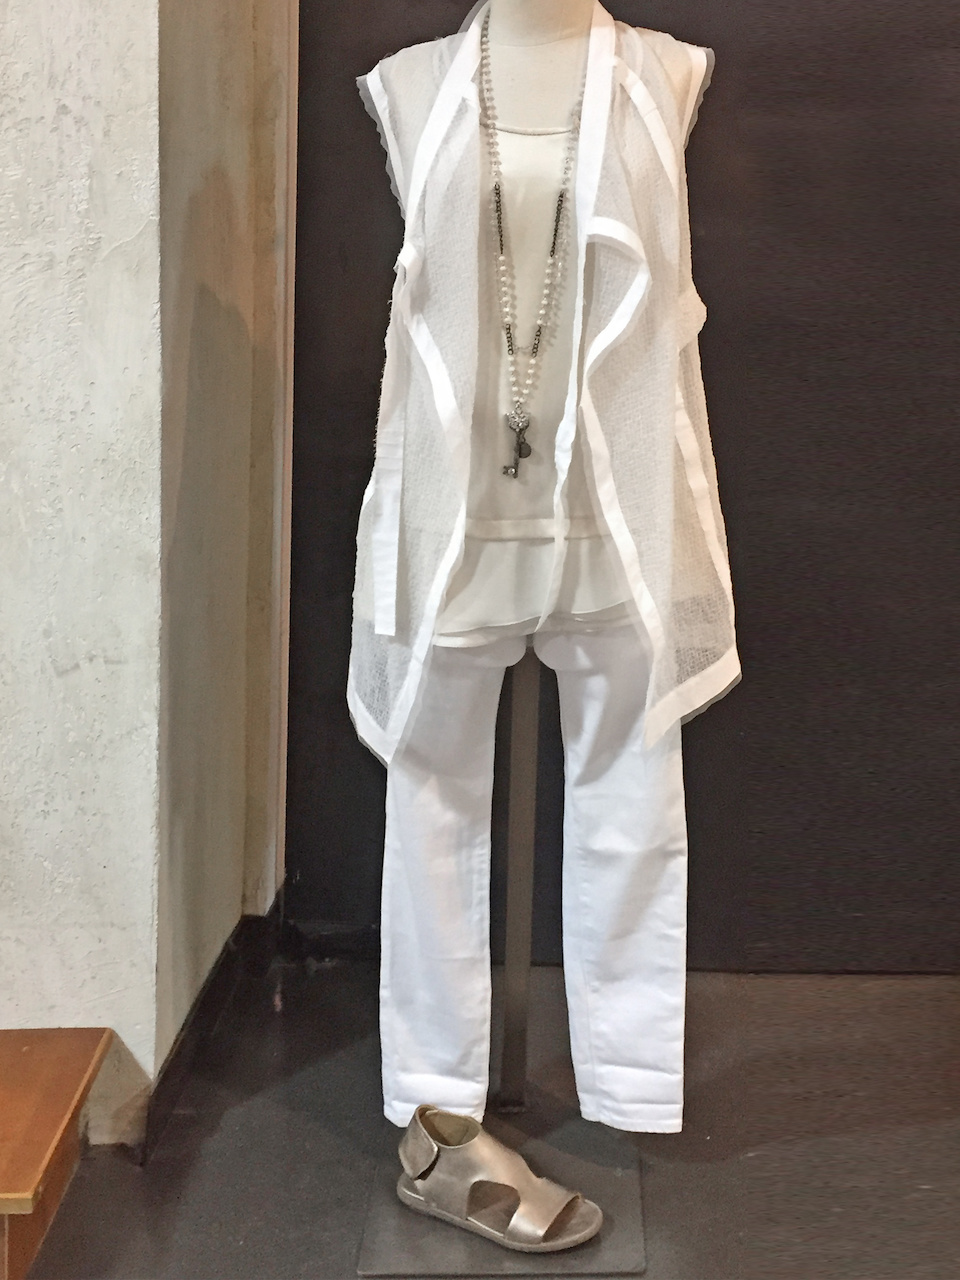 From Betsy Prince: Demoo white sleeveless vest, $438; AG Farrah Skinny jean in white, $178; Rocco Ragni cream sleeveless top, $330